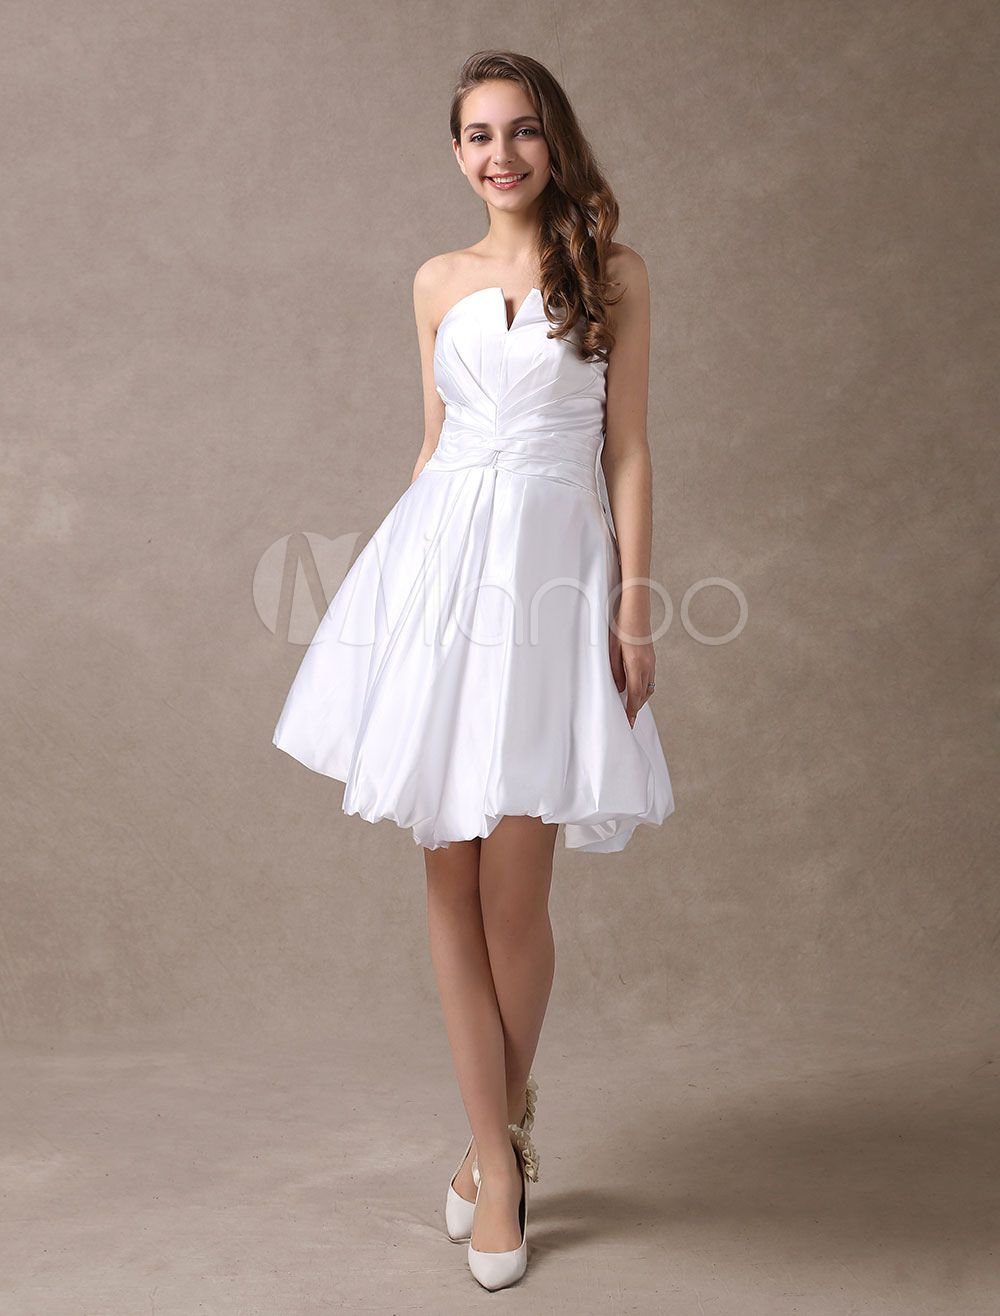 Mini white wedding dress  Beautiful White Satin Aline Strapless Mini Wedding Dress  Wedding